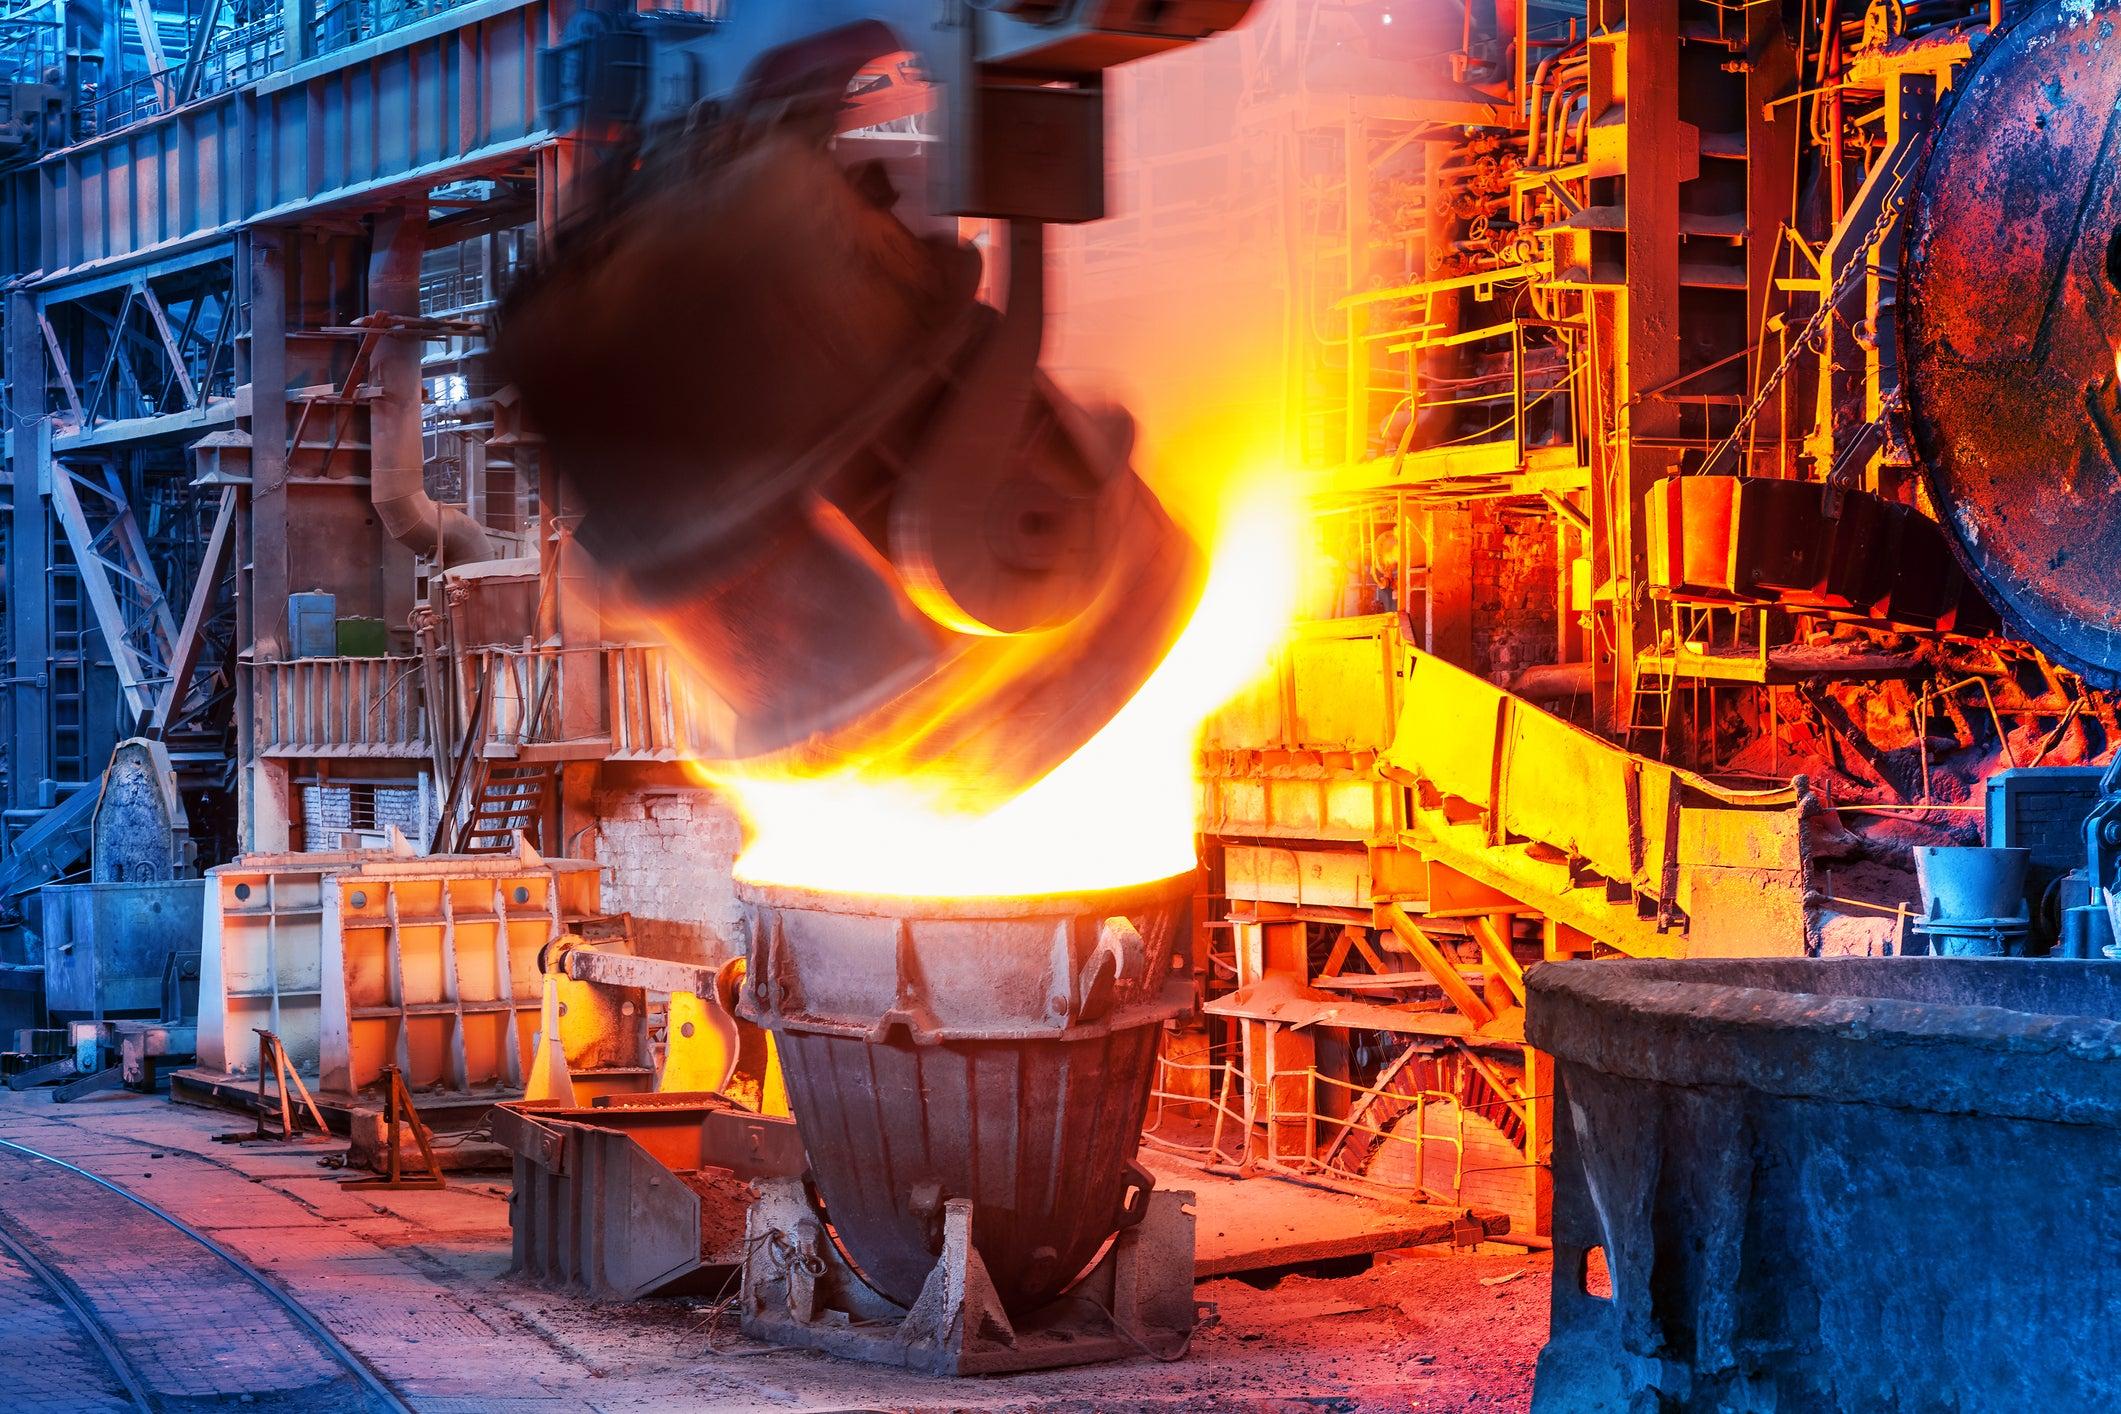 Cleveland-Cliffs Continues Steel Consolidation With Purchase of ArcelorMittal